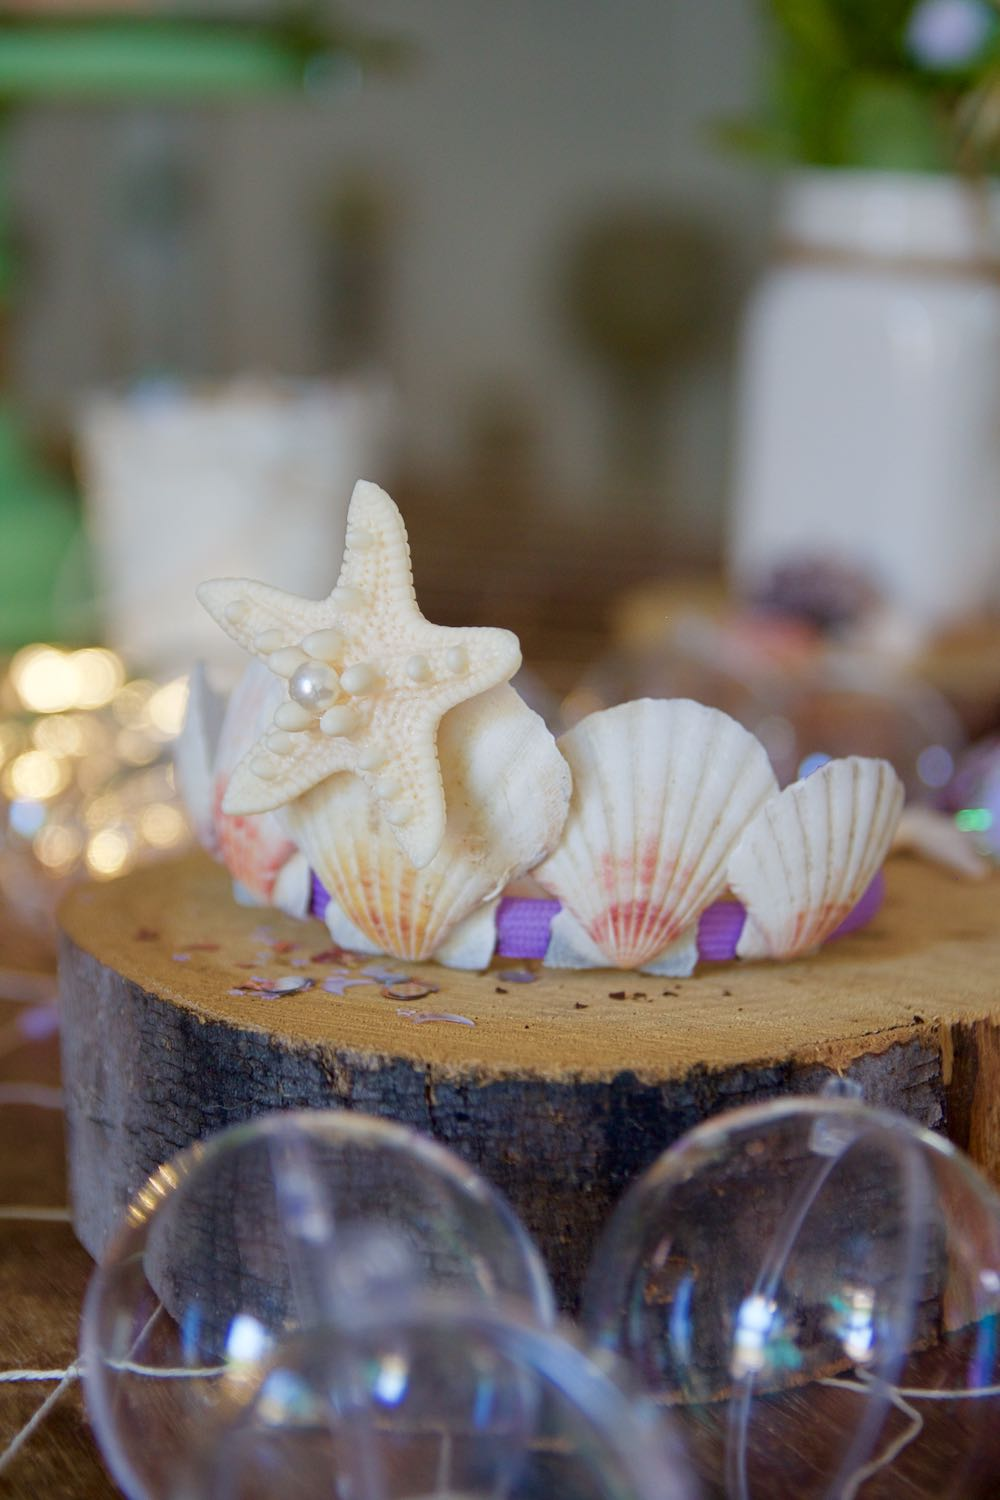 How to make a DIY seashell crown